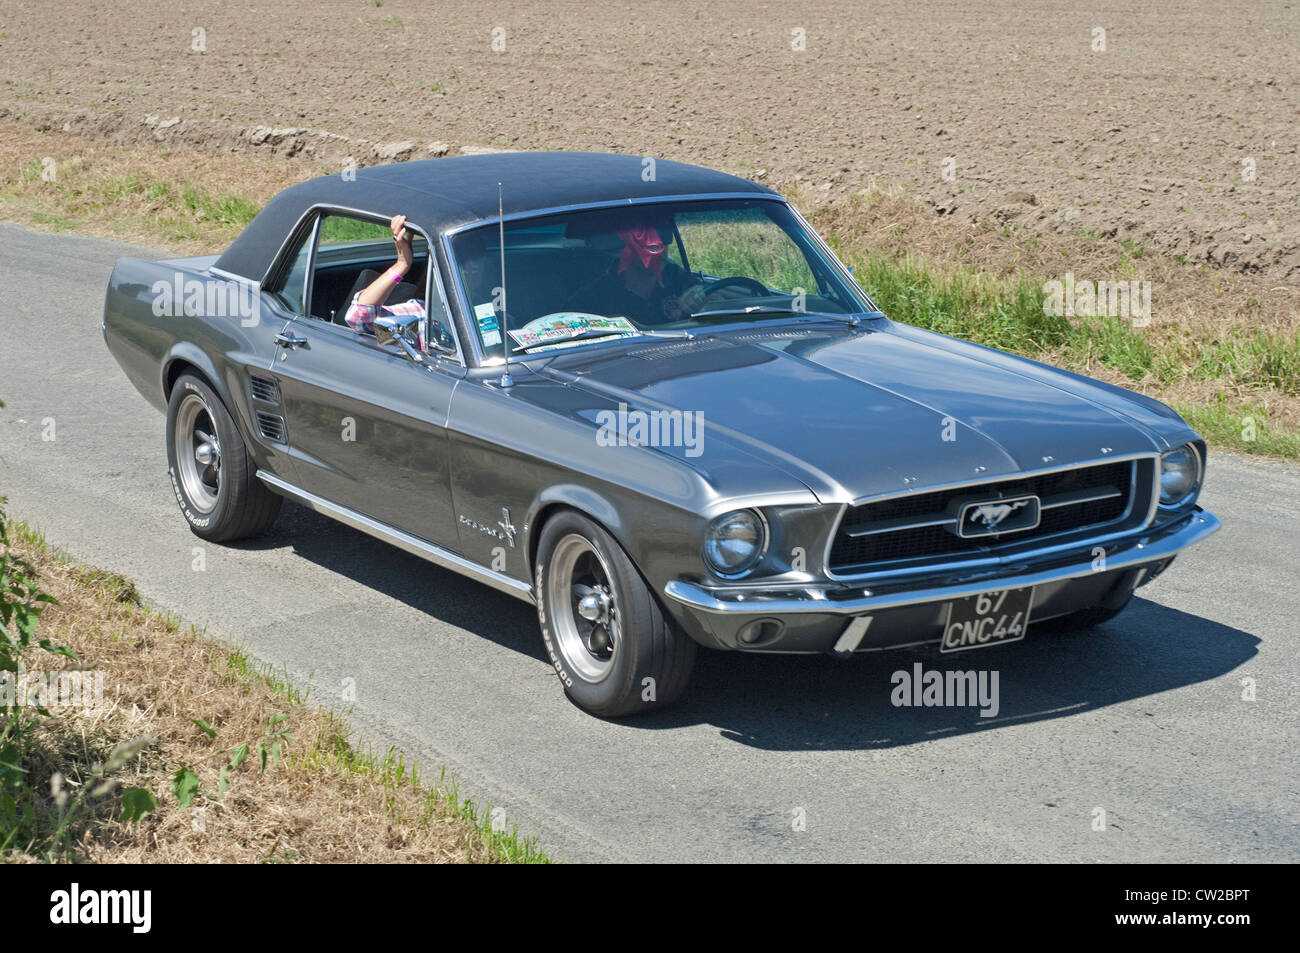 Ford mustang coupe of 1967 in the tour de bretagne near pordic in